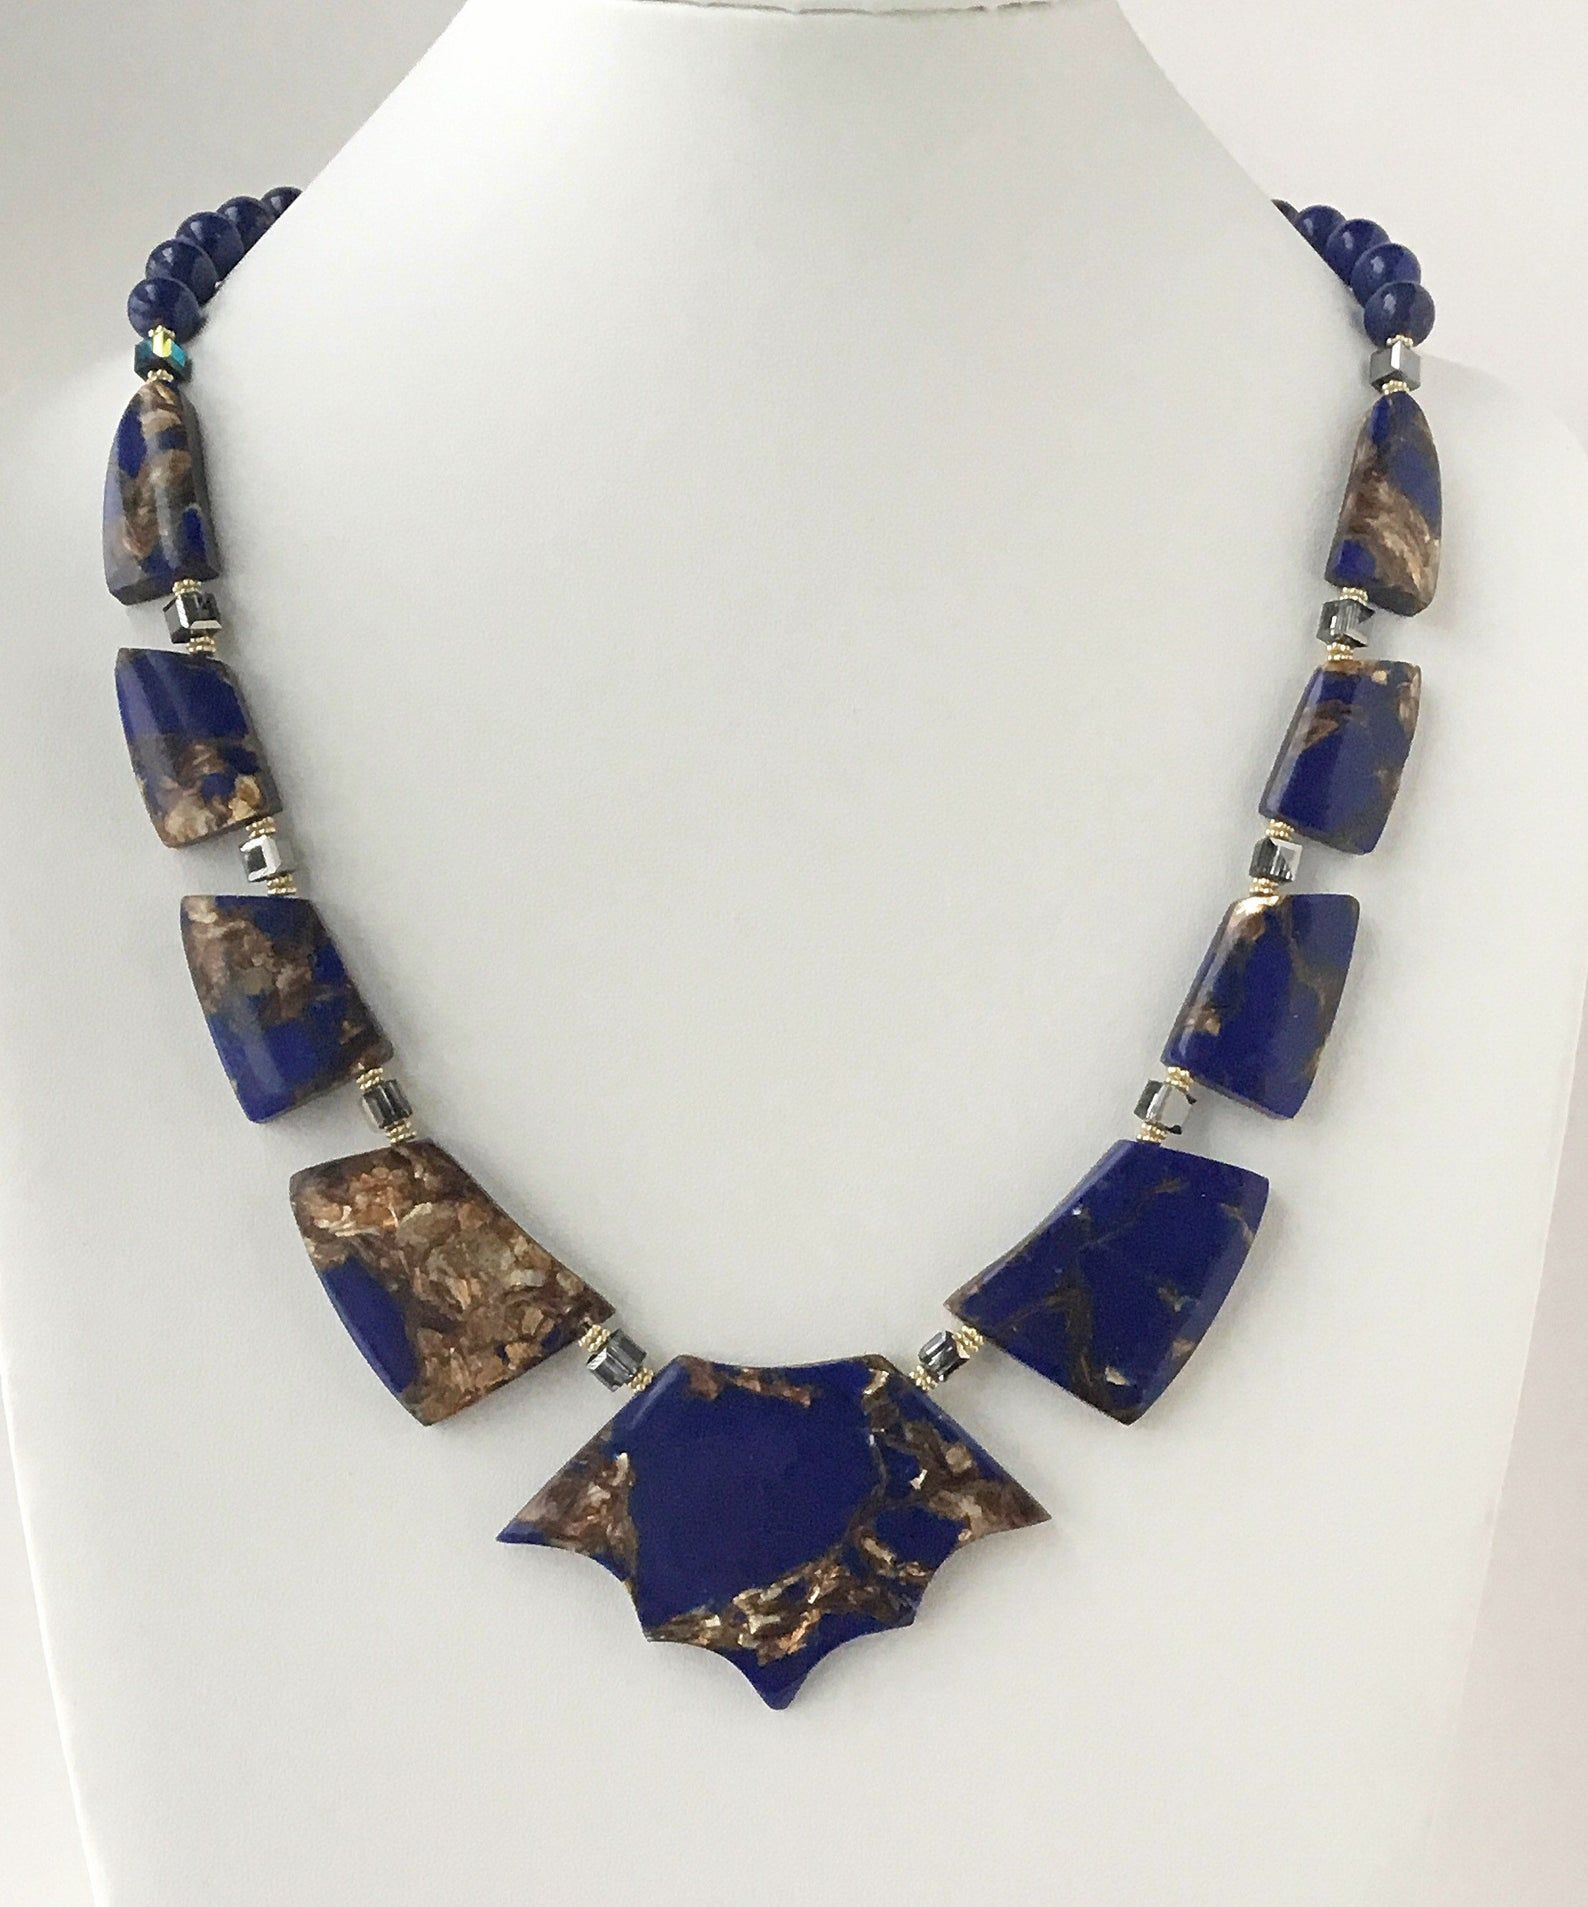 Silver Necklace Blue with White Agate Necklace Bib Necklace Statement Necklace Gemstone Necklace